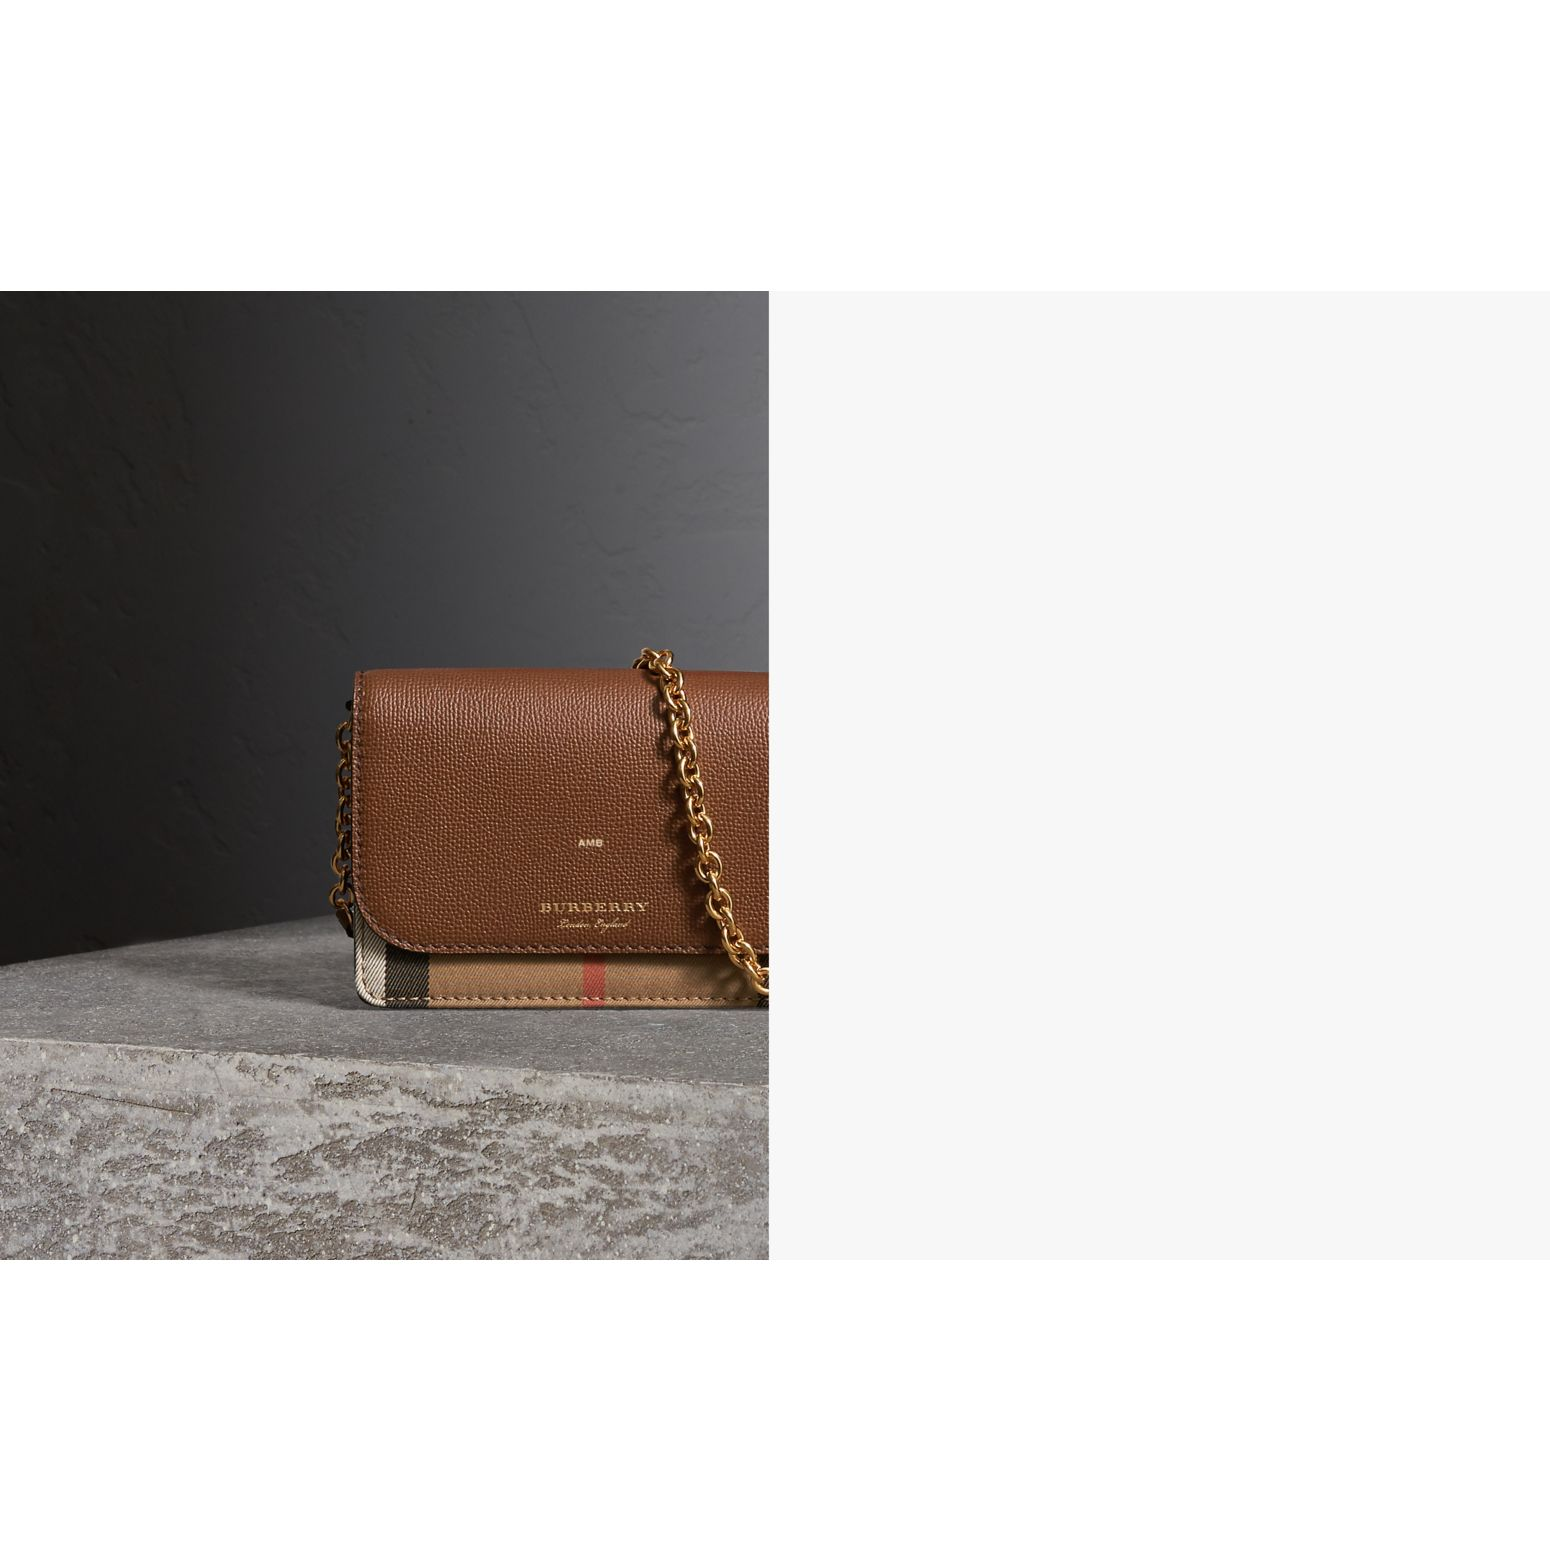 Leather and House Check Wallet with Detachable Strap in Tan - Women | Burberry - gallery image 2